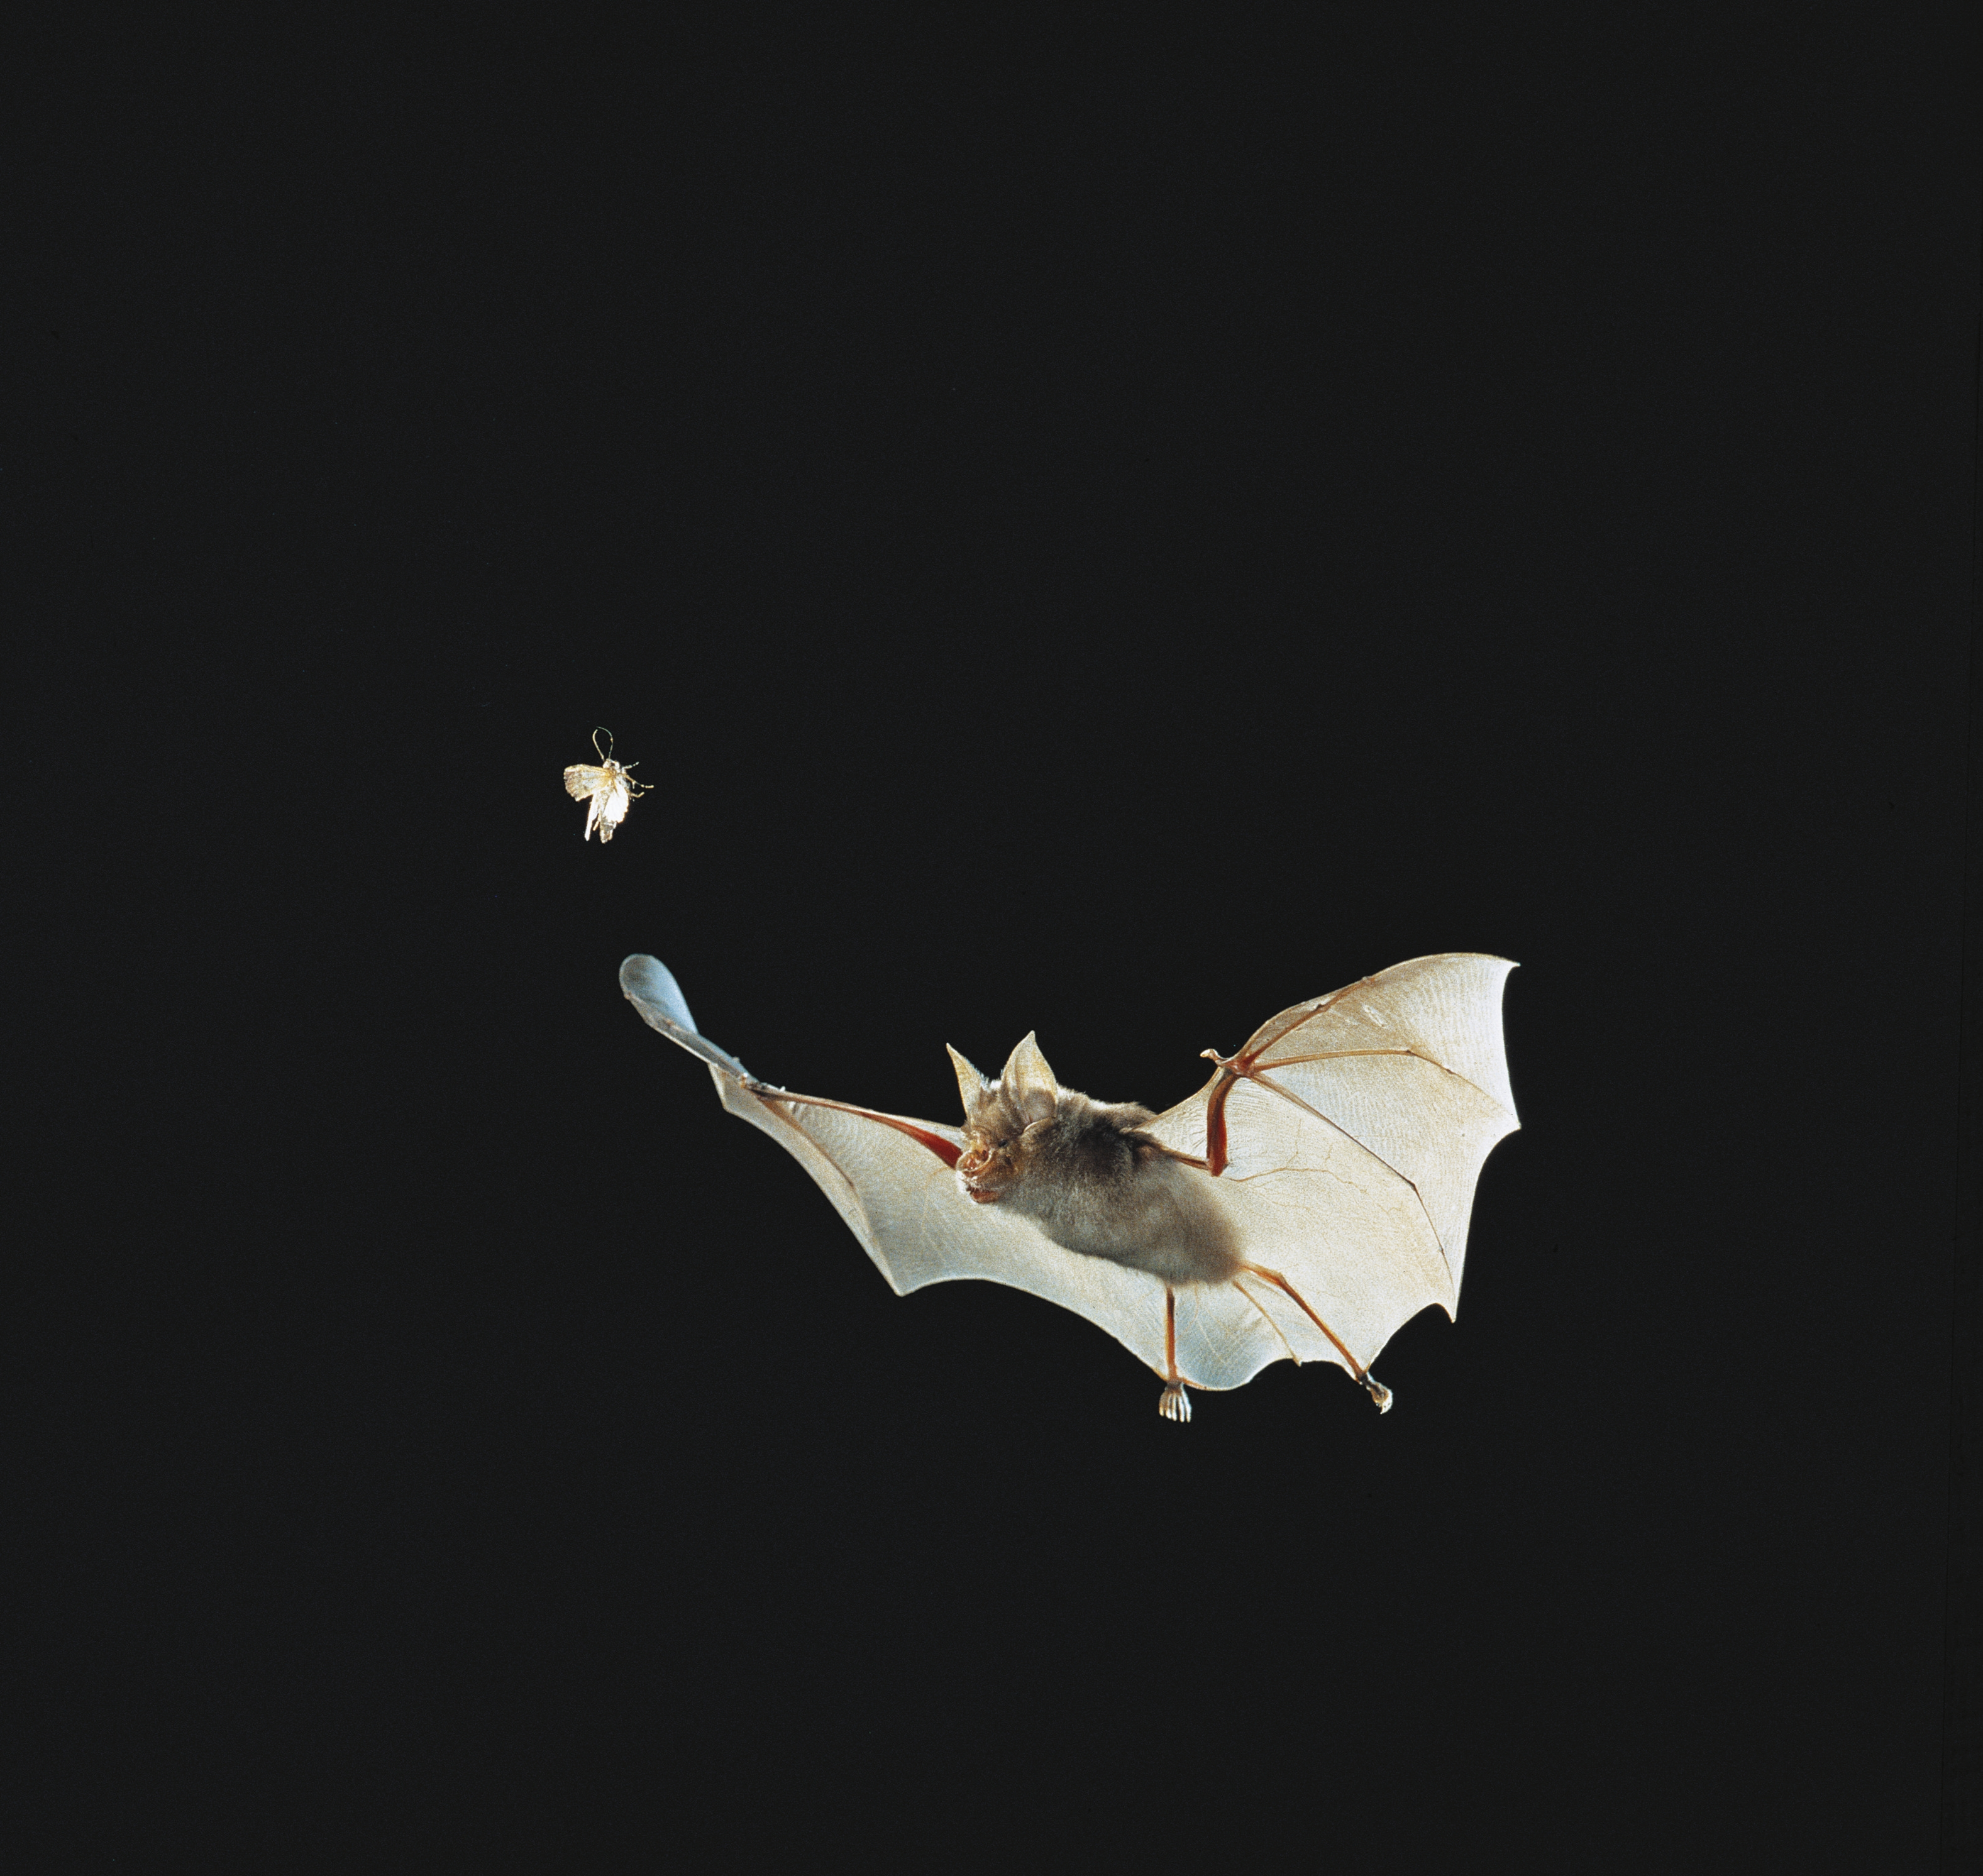 A Greater Horseshoe Bat flying in pursuit of an insect.